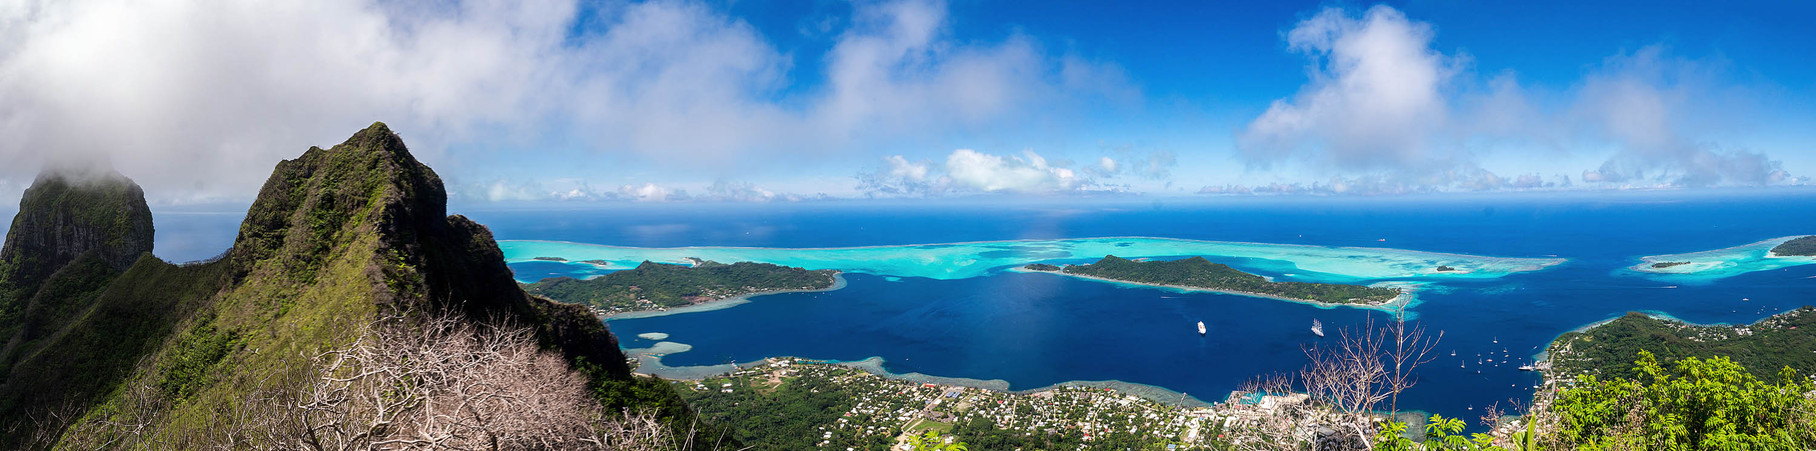 Panoramic view of Bora Bora from Mount Ohue (619masl)